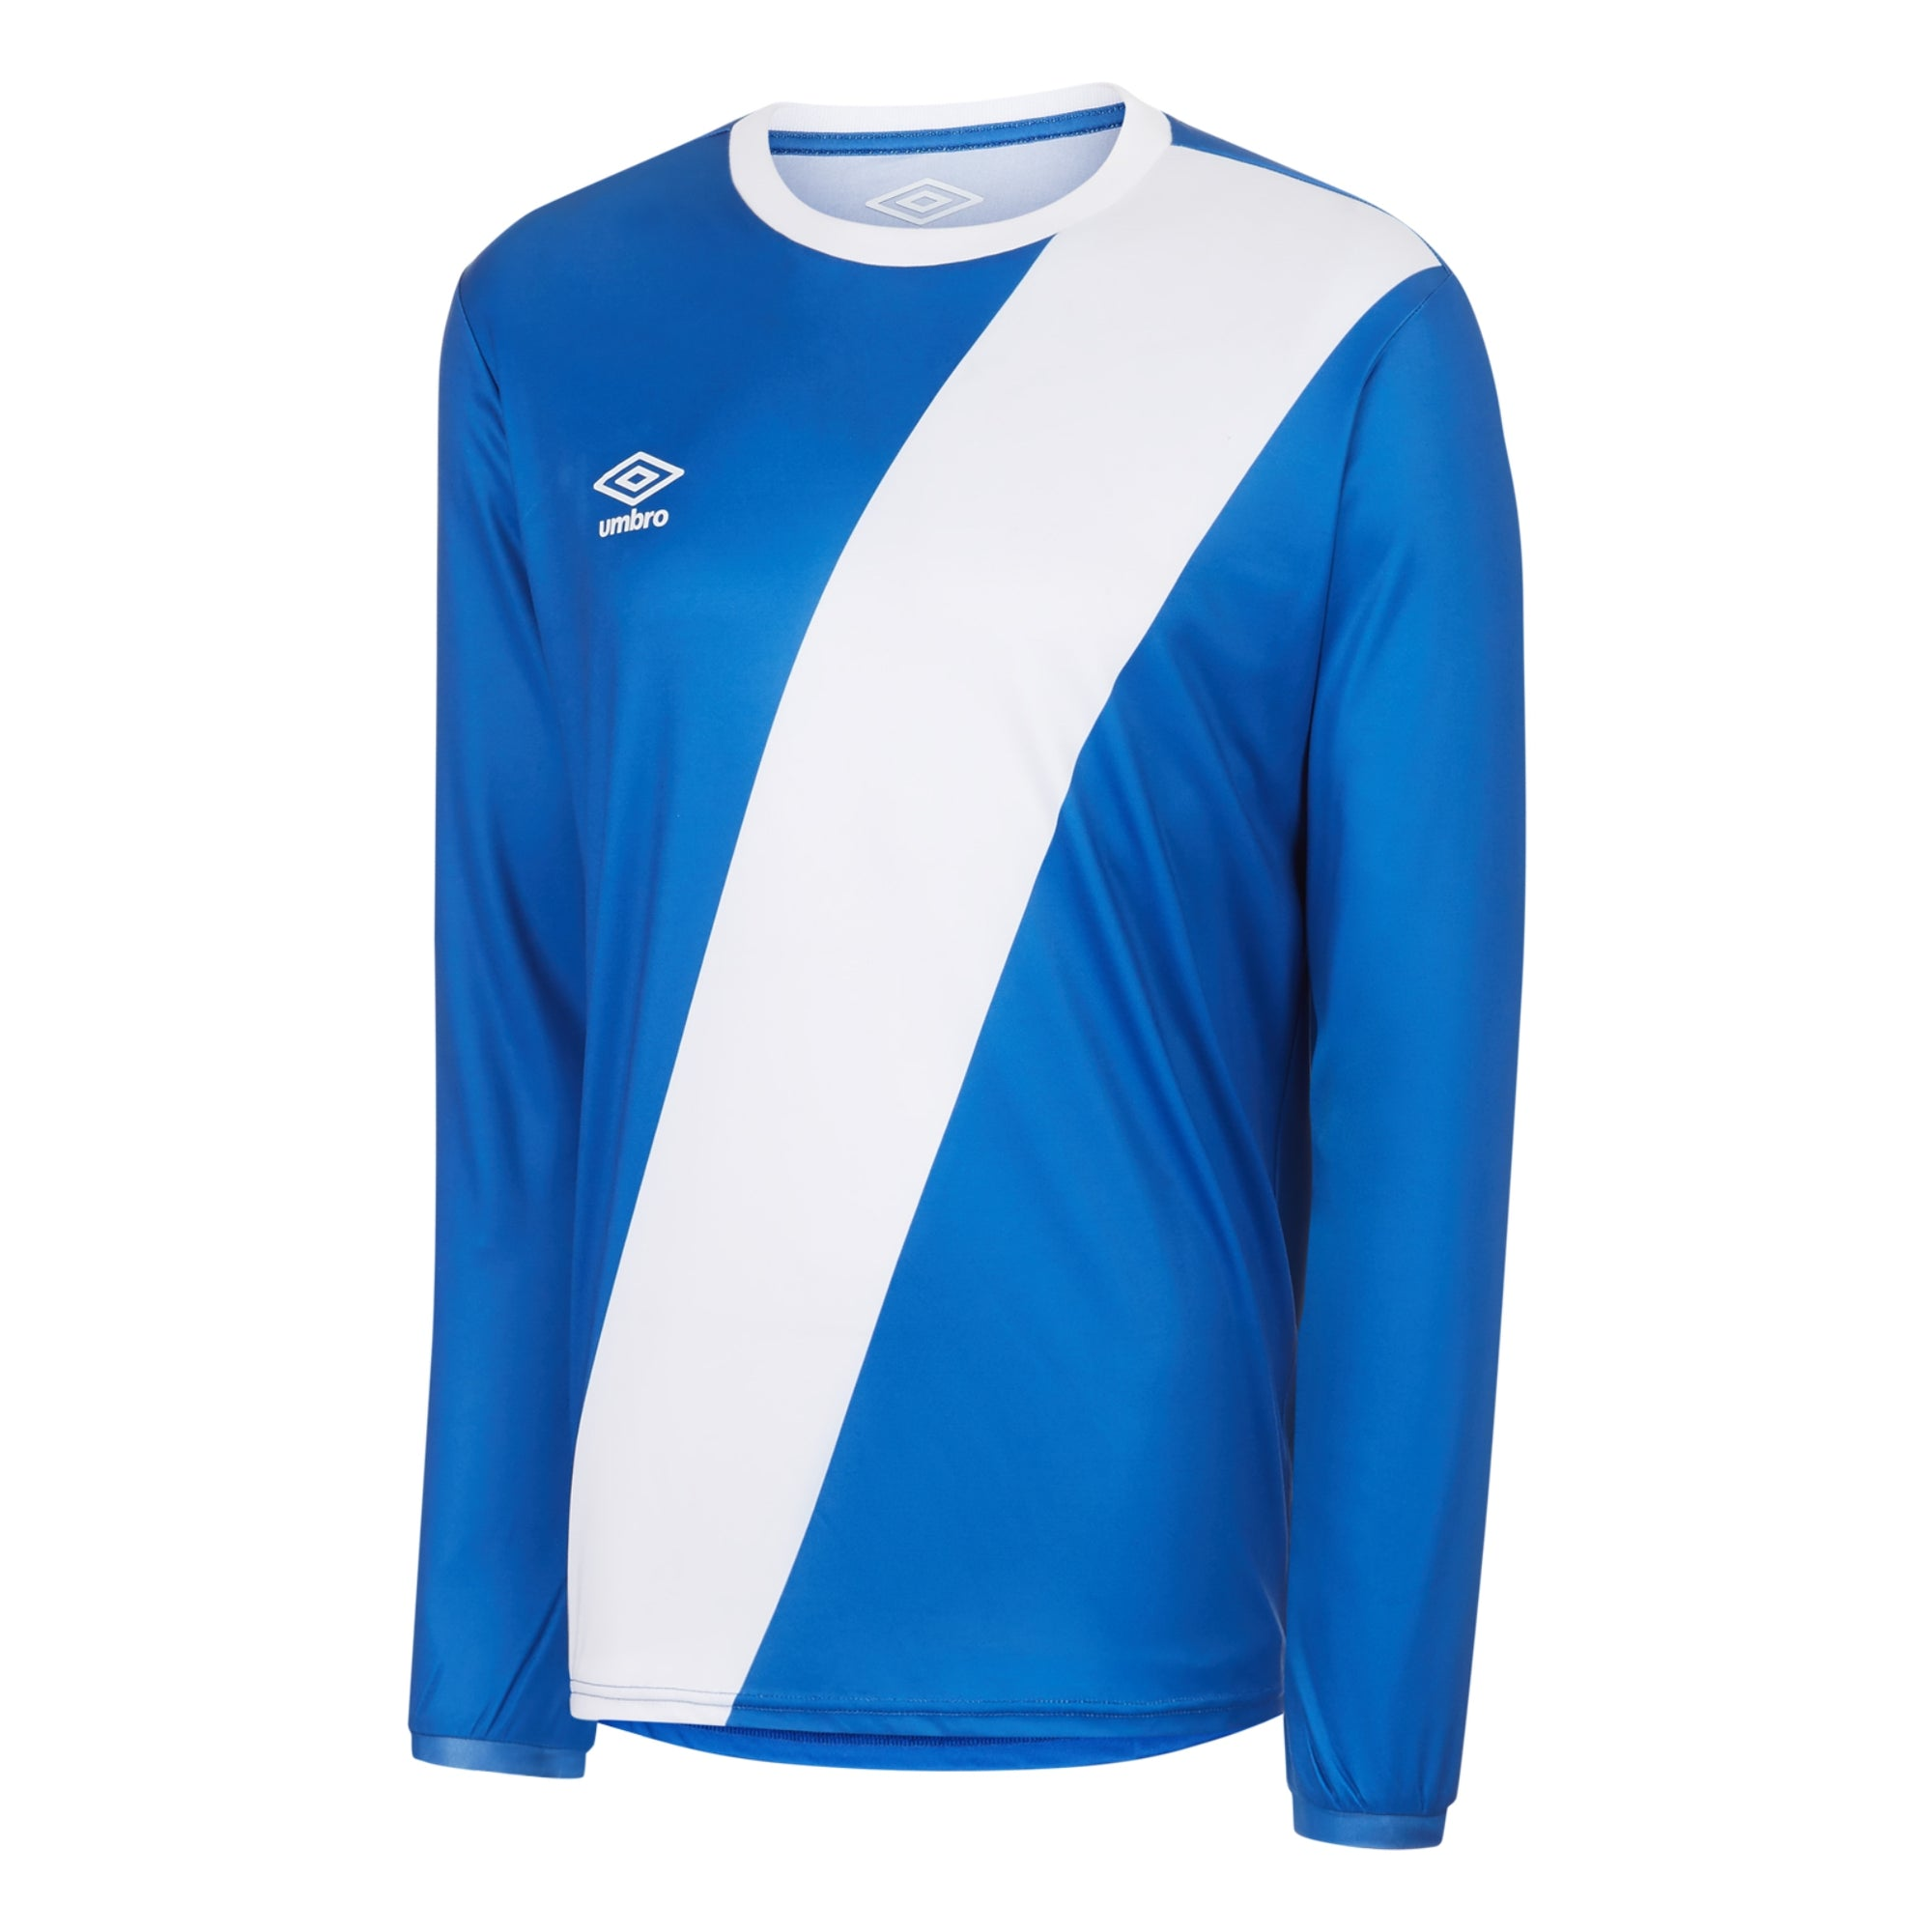 Umbro Nazca Jersey LS - Royal/White